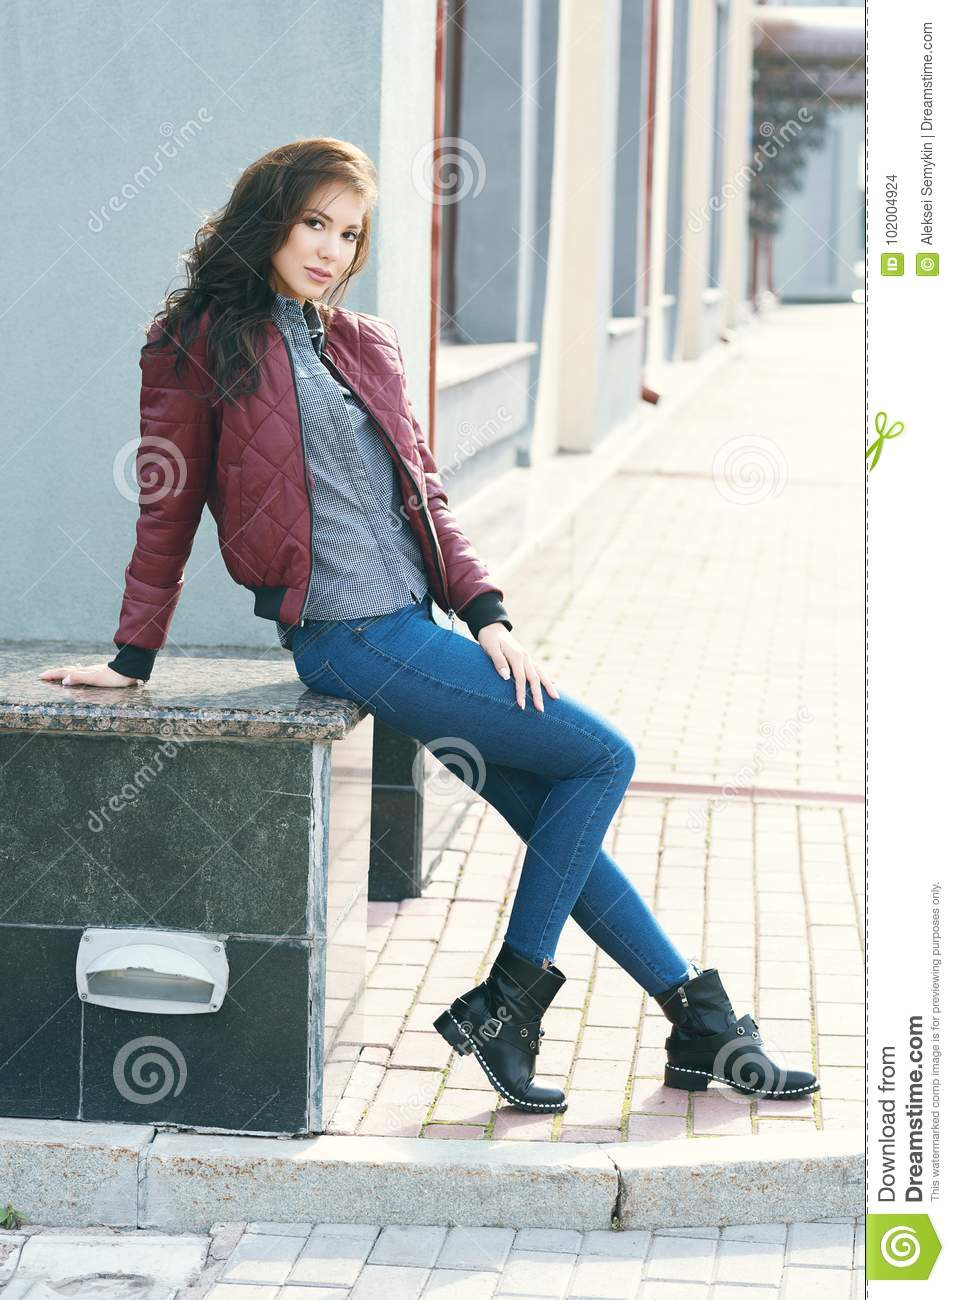 688a8d58c Young Beautiful Stylish Woman In A Burgundy Pilot`s Jacket And Blue ...